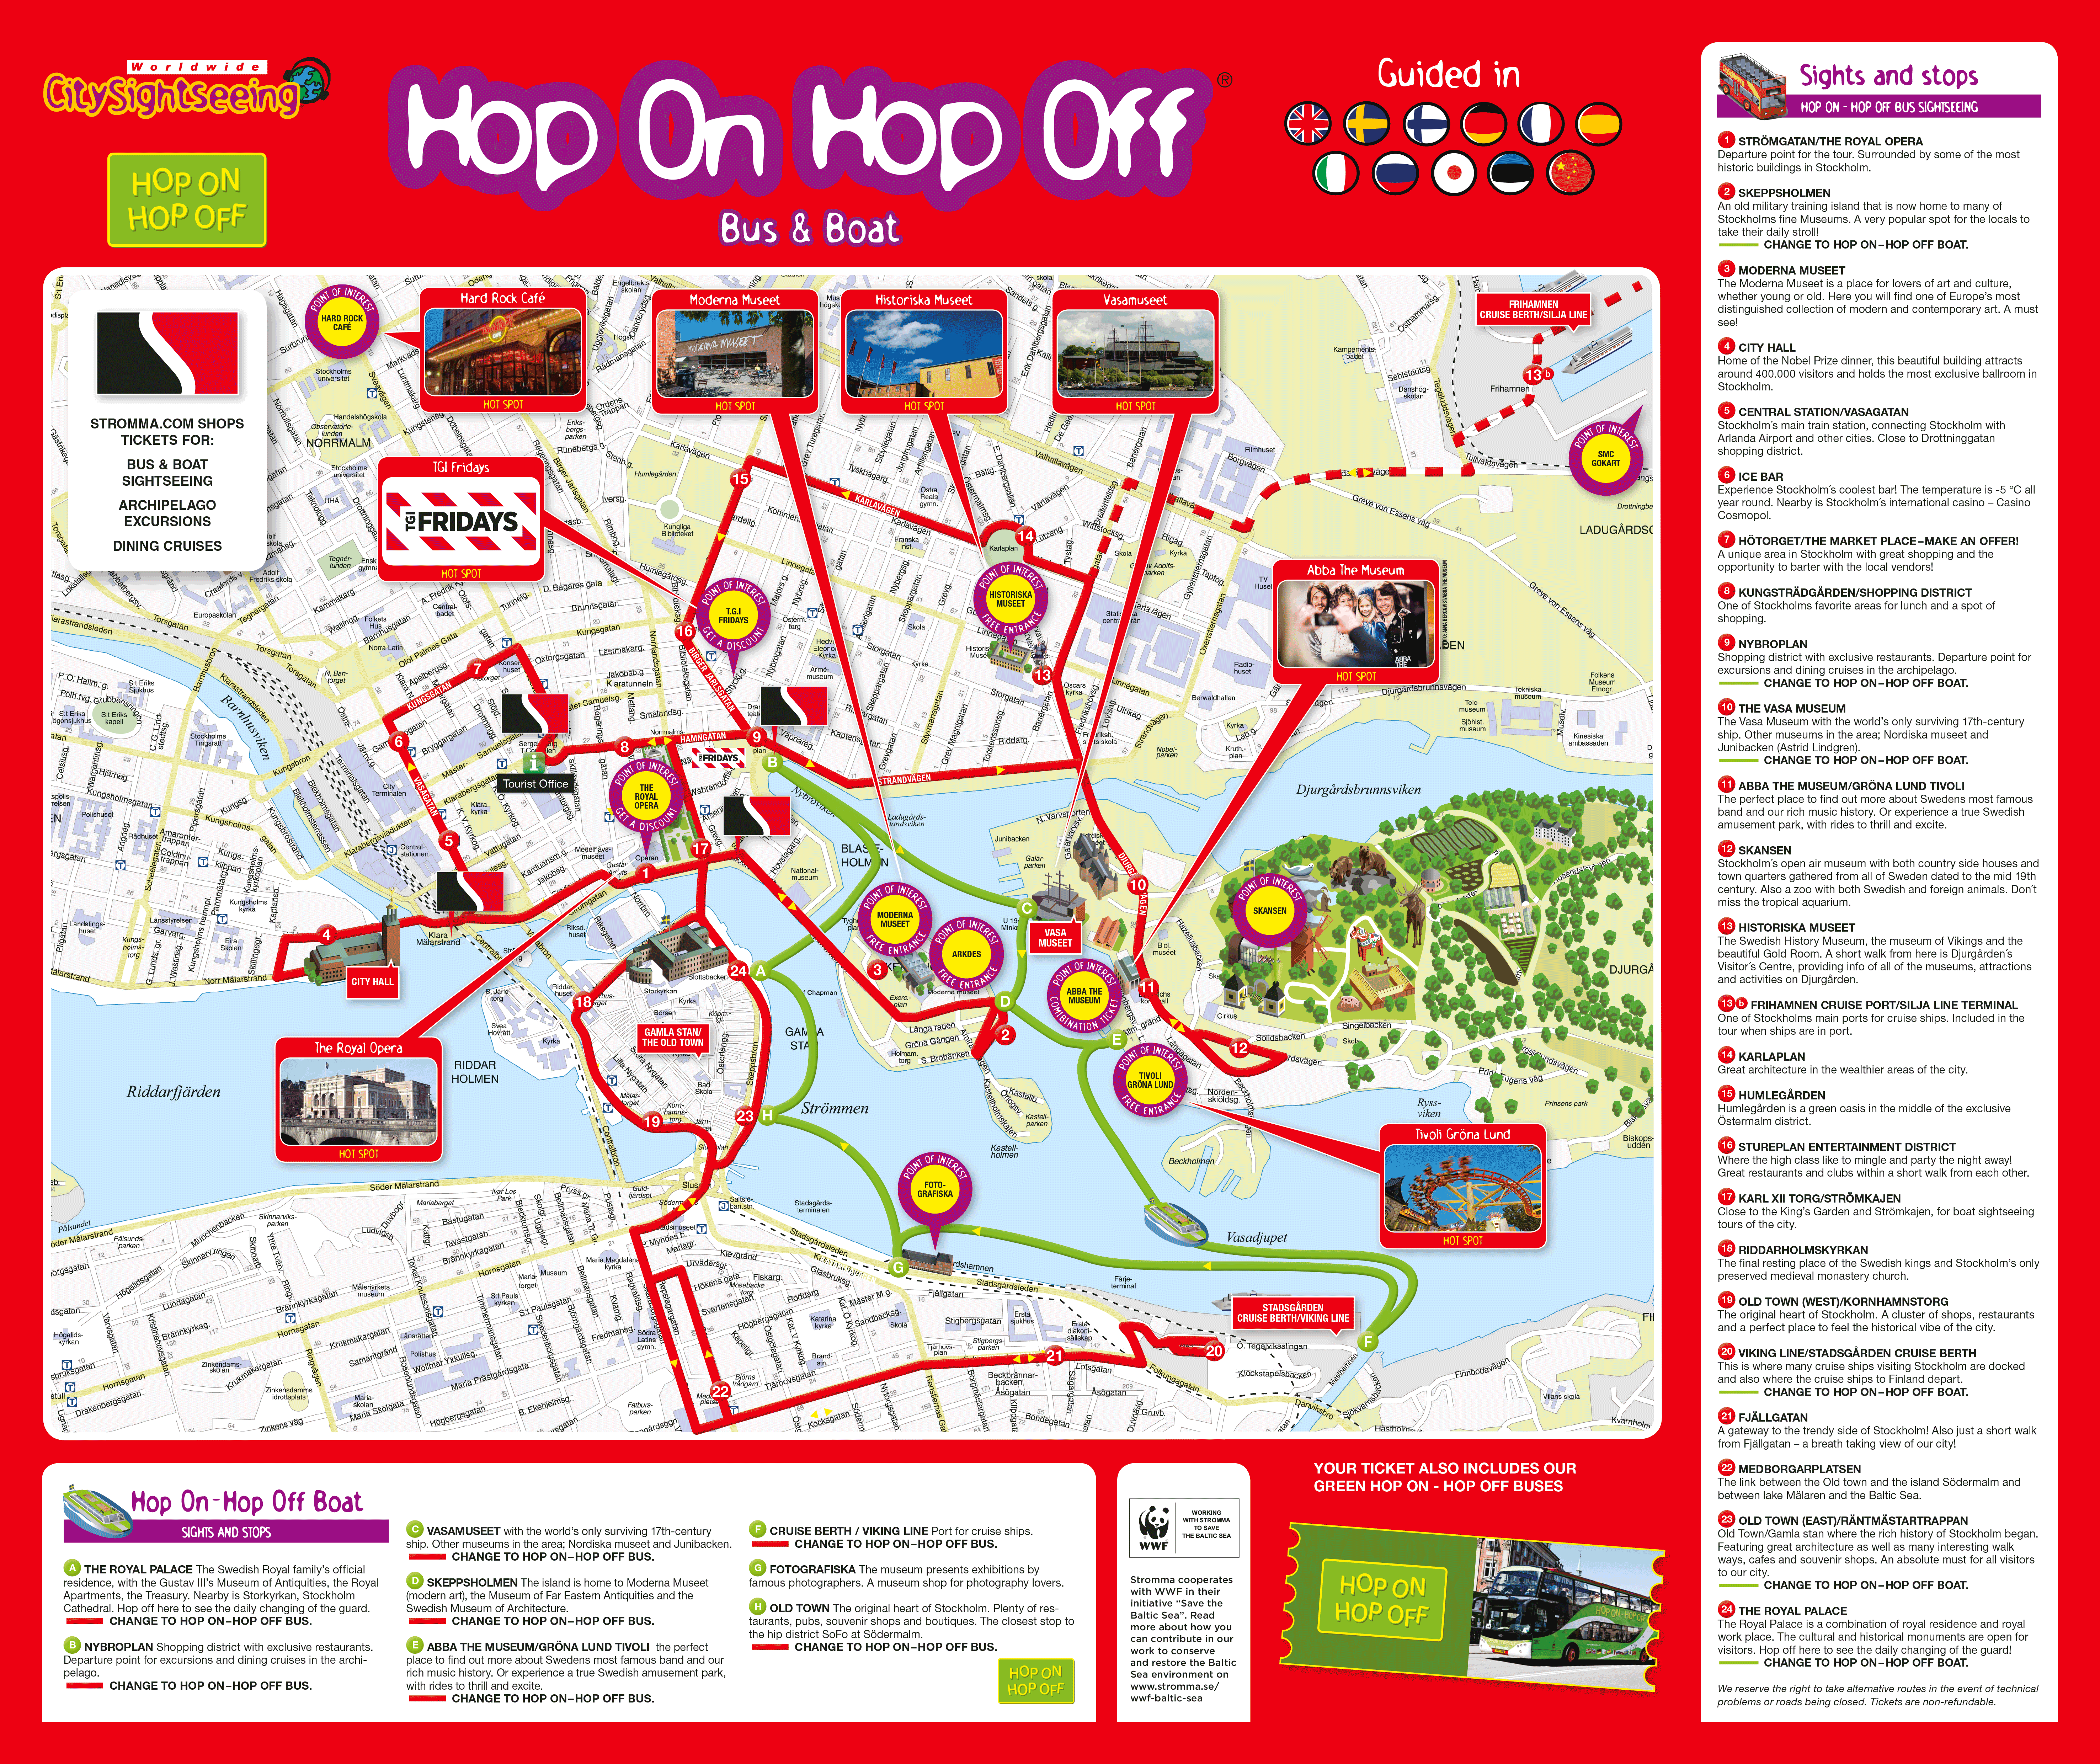 paris hop on off bus map with City Sightseeing Worldwide on London Top Tourist Attractions Map 06 Double Decker Bus Tour High Resolution as well Toronto Hop On Hop Off Bus Tour Map furthermore Paris Metro 10 together with Mappa salisburgo as well Paris Metro 1.